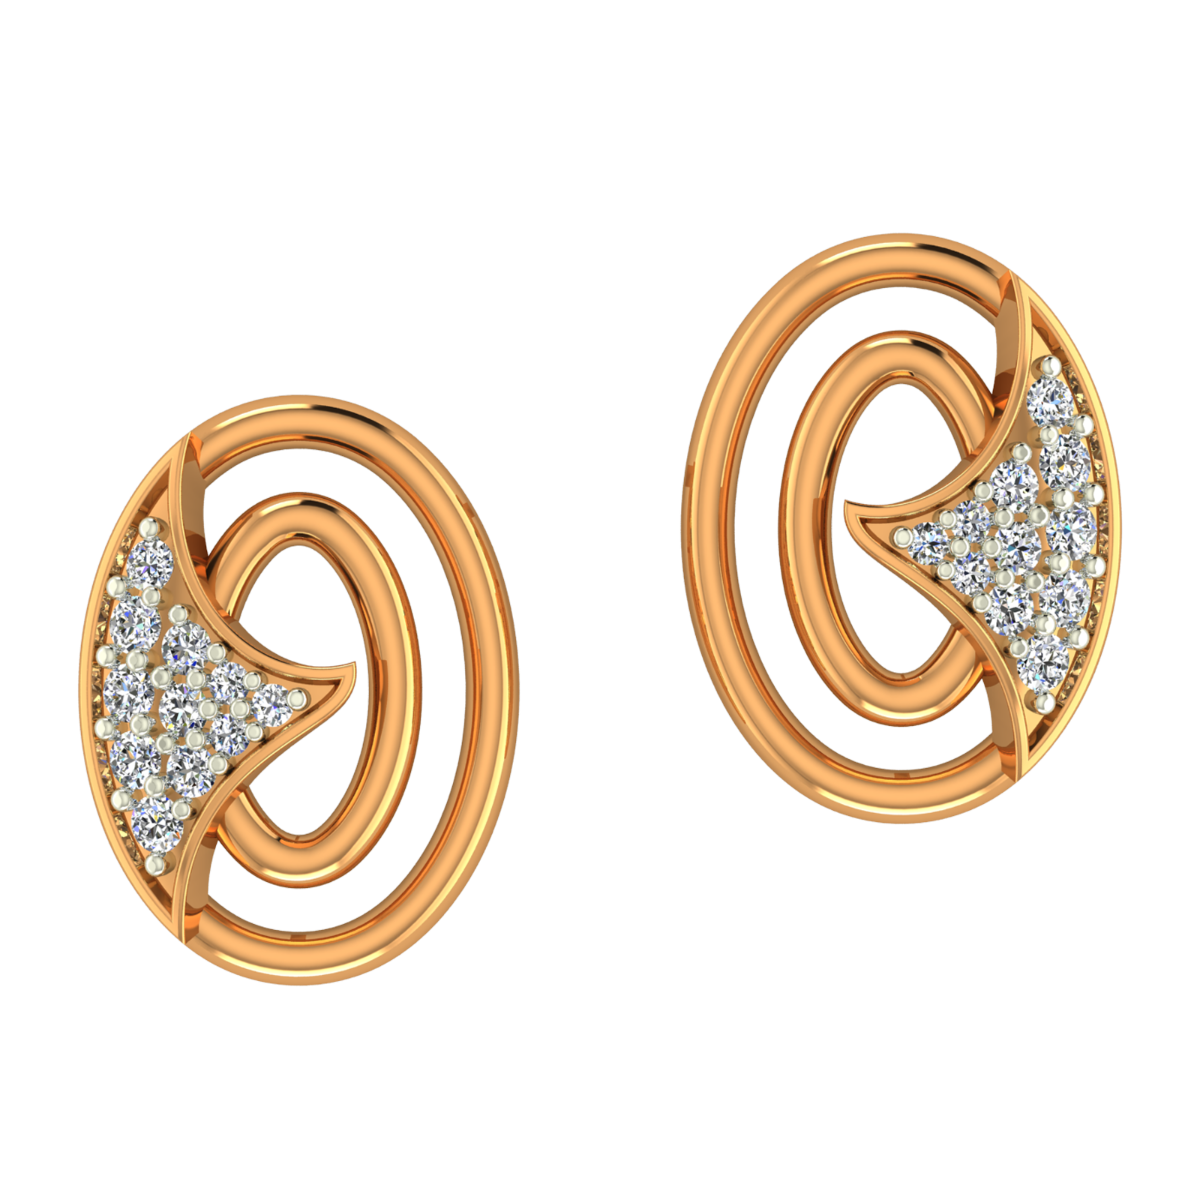 The White Trail Gold Diamond Earrings